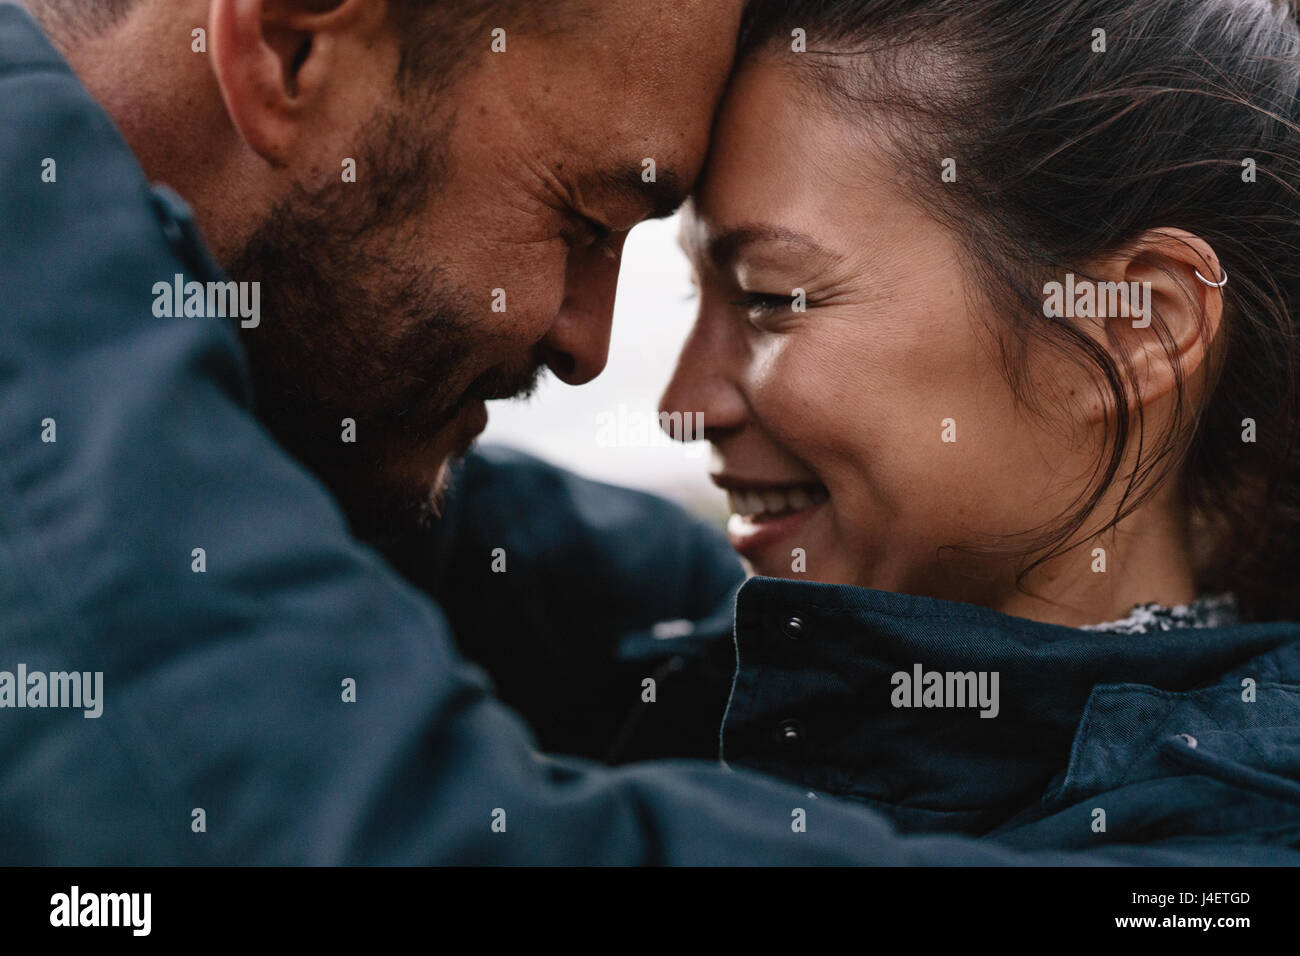 Close-up side portrait of young mixed race couple in love. Romantic couple embracing each other and smiling. - Stock Image